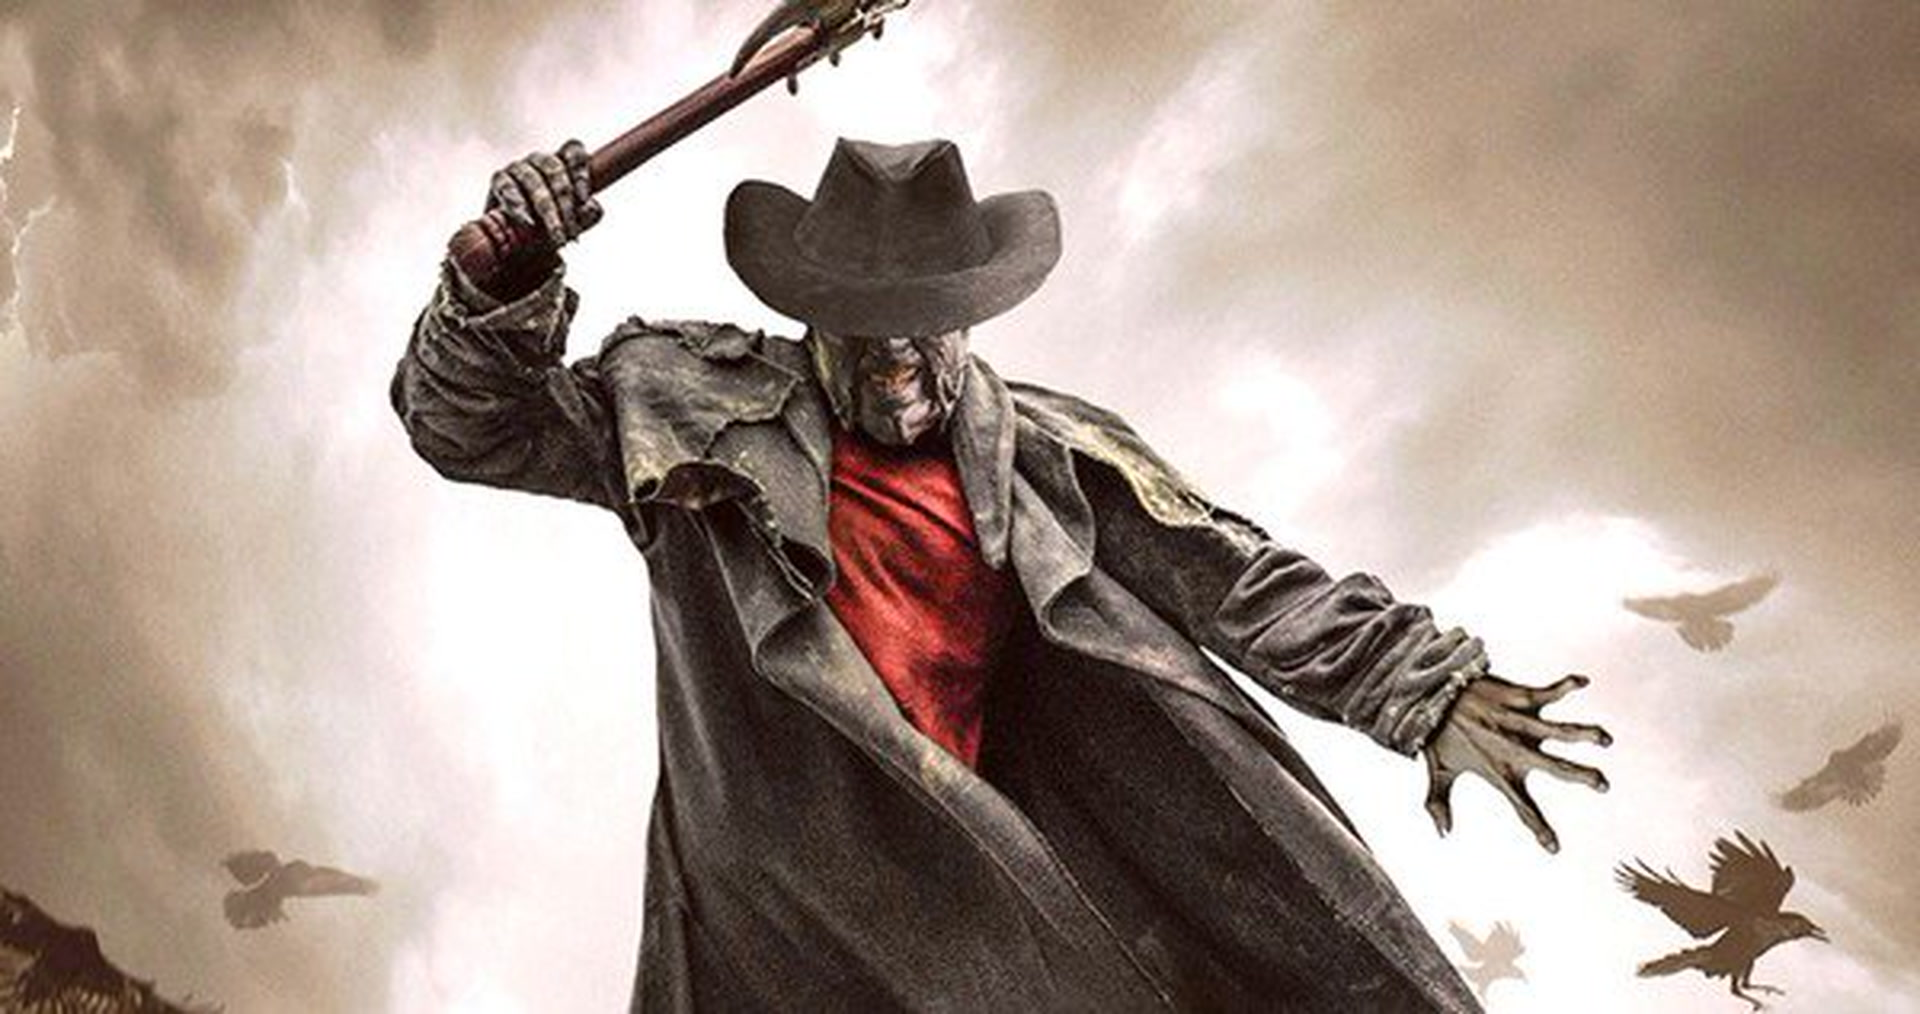 jeepers creepers 3 on syfy uk